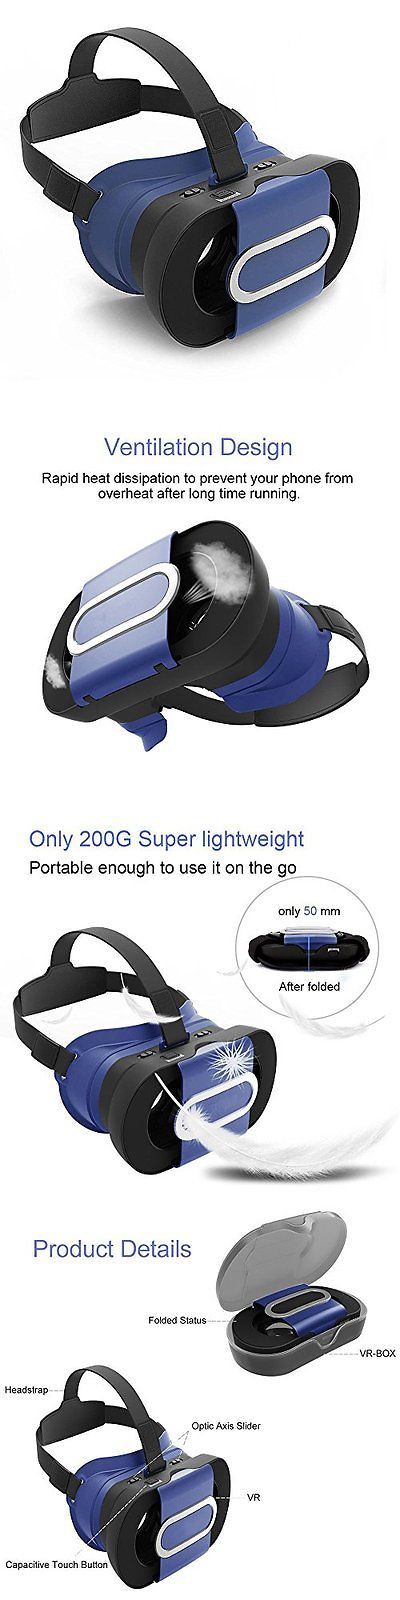 Smartphone VR Headsets: Headset Vr Glasses Virtual Reality 3D Games For Android Ios Iphone Samsung Blue BUY IT NOW ONLY: $30.07 #iphone #ipad #ios #iosgames #iphonegames #iphoneapps BTW, check out cool art and iphone cases here:  http://www.jers-phone-cases.com http://universalthroughput.imobileappsys.com